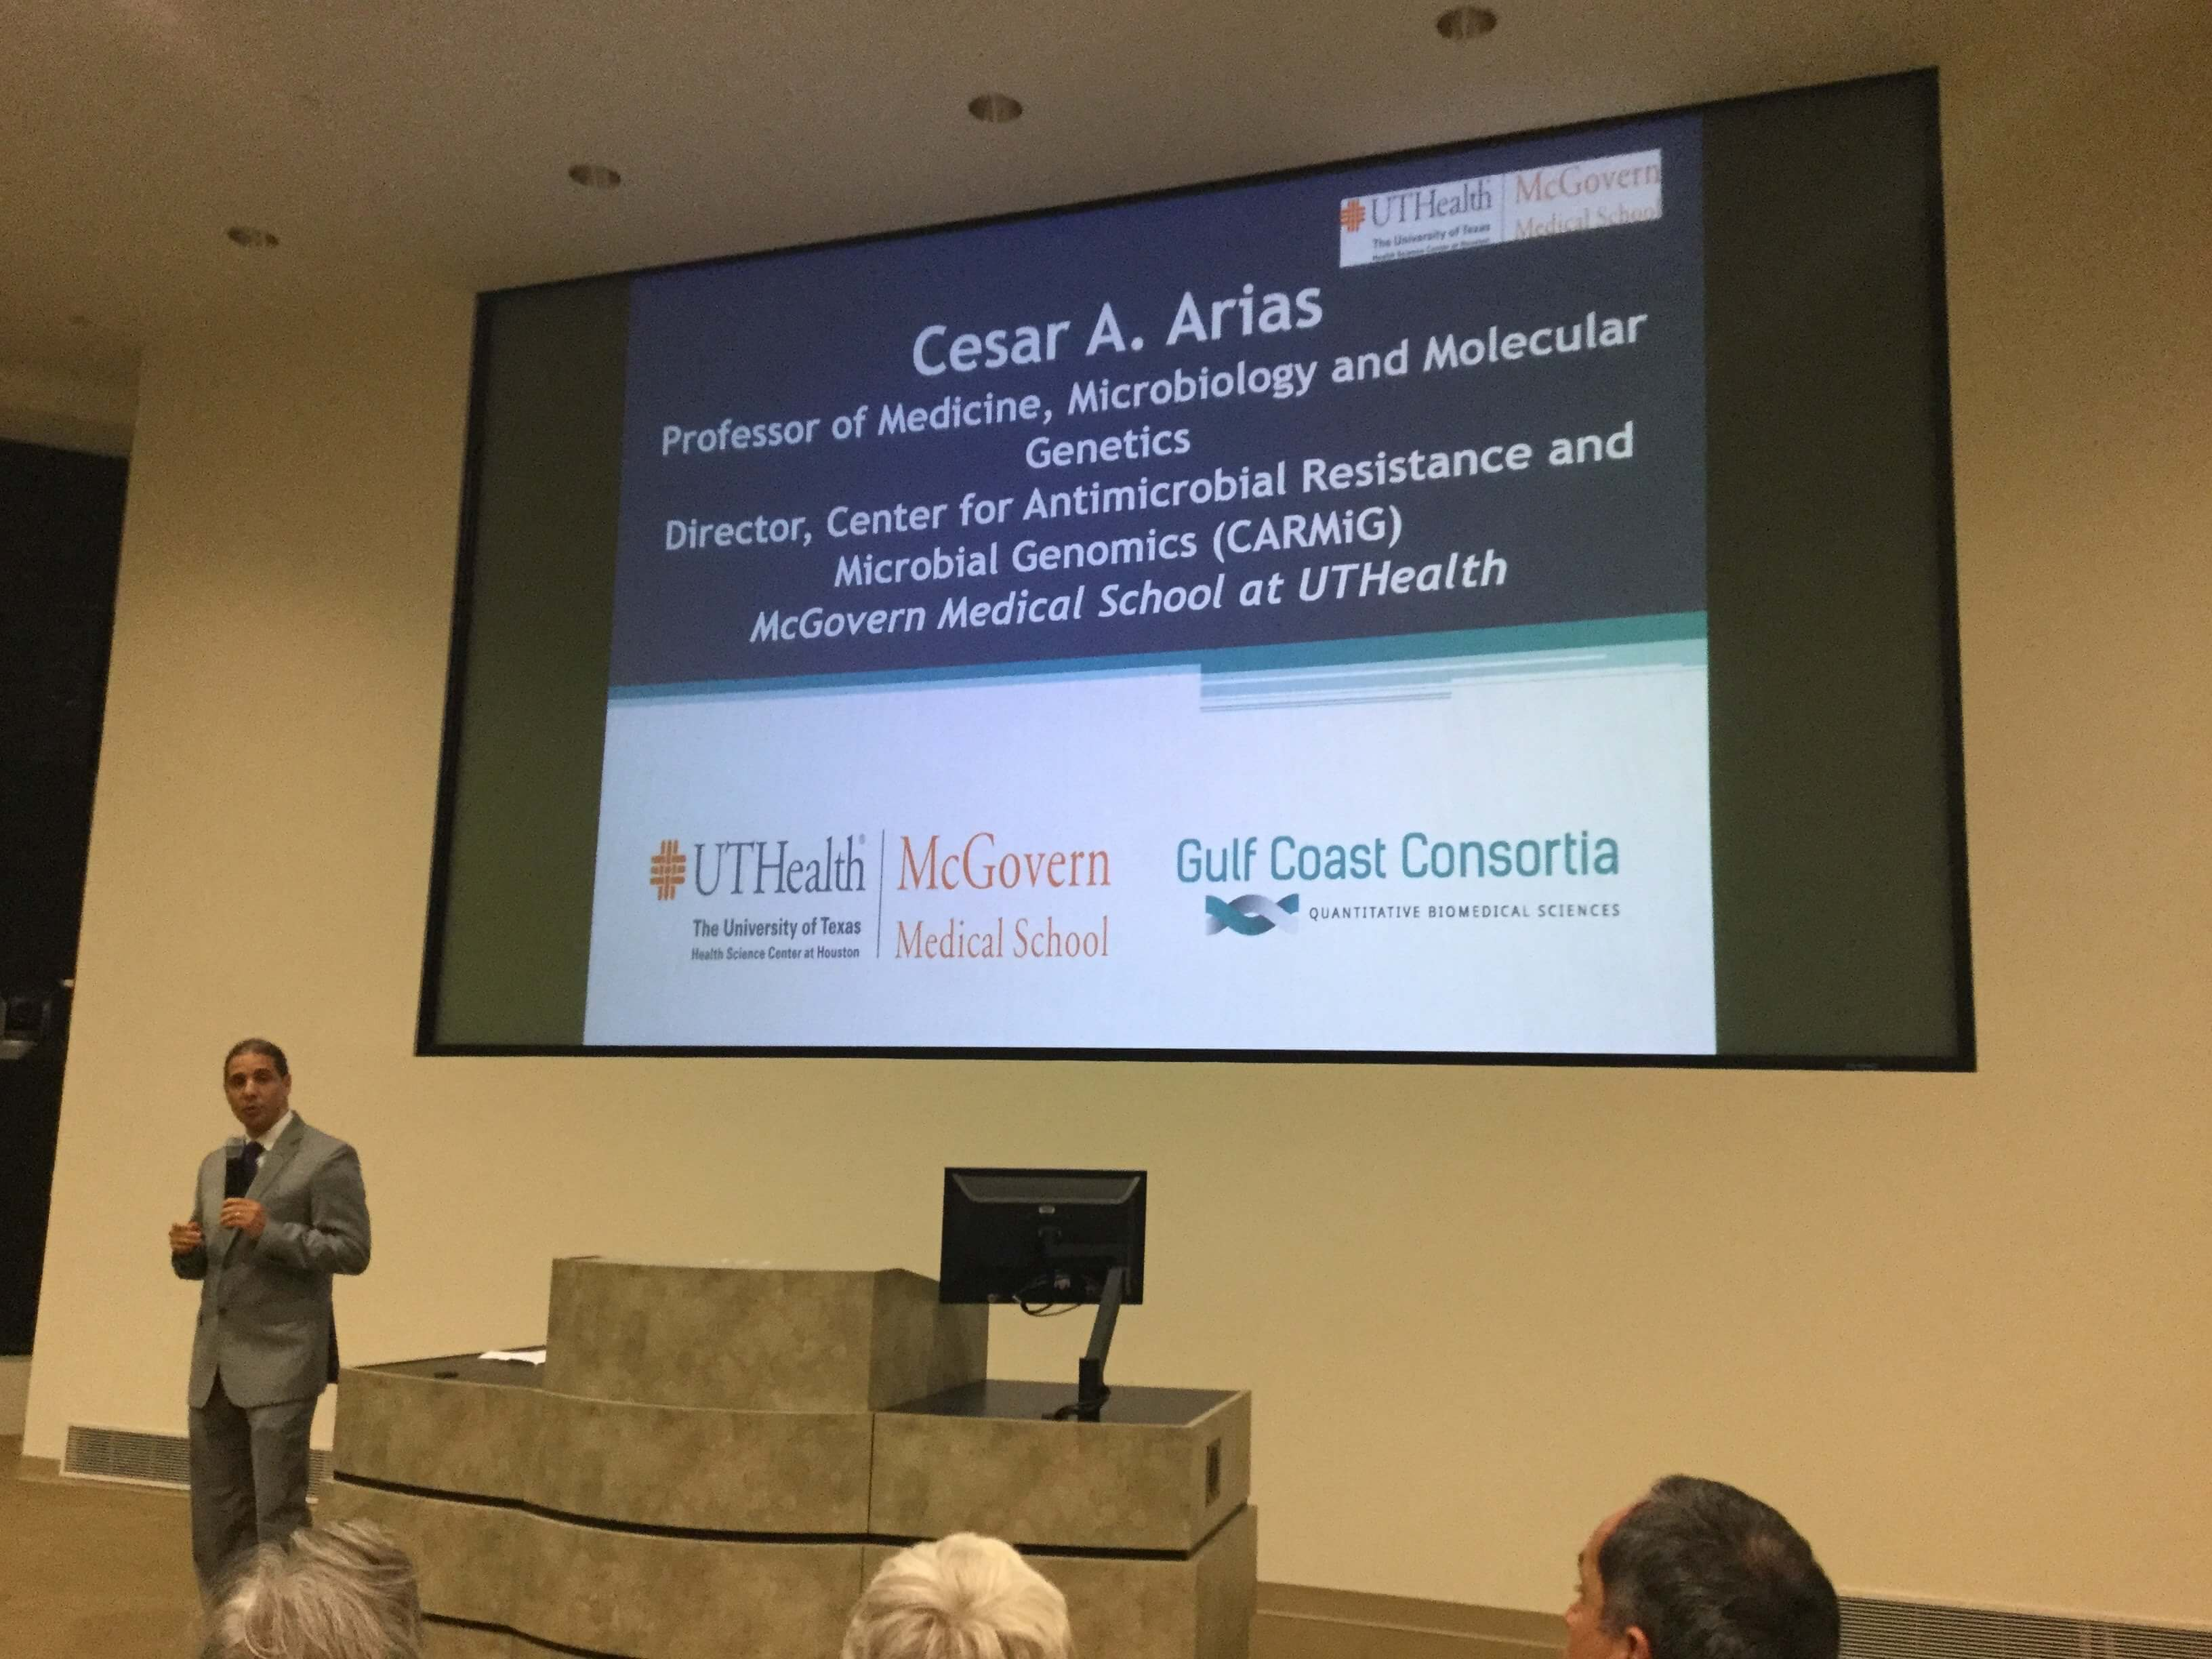 Cesar Arias, M.D., Ph.D., director of CARMiG and professor of medicine, microbiology and molecular genetics at McGovern Medical School at UT Health